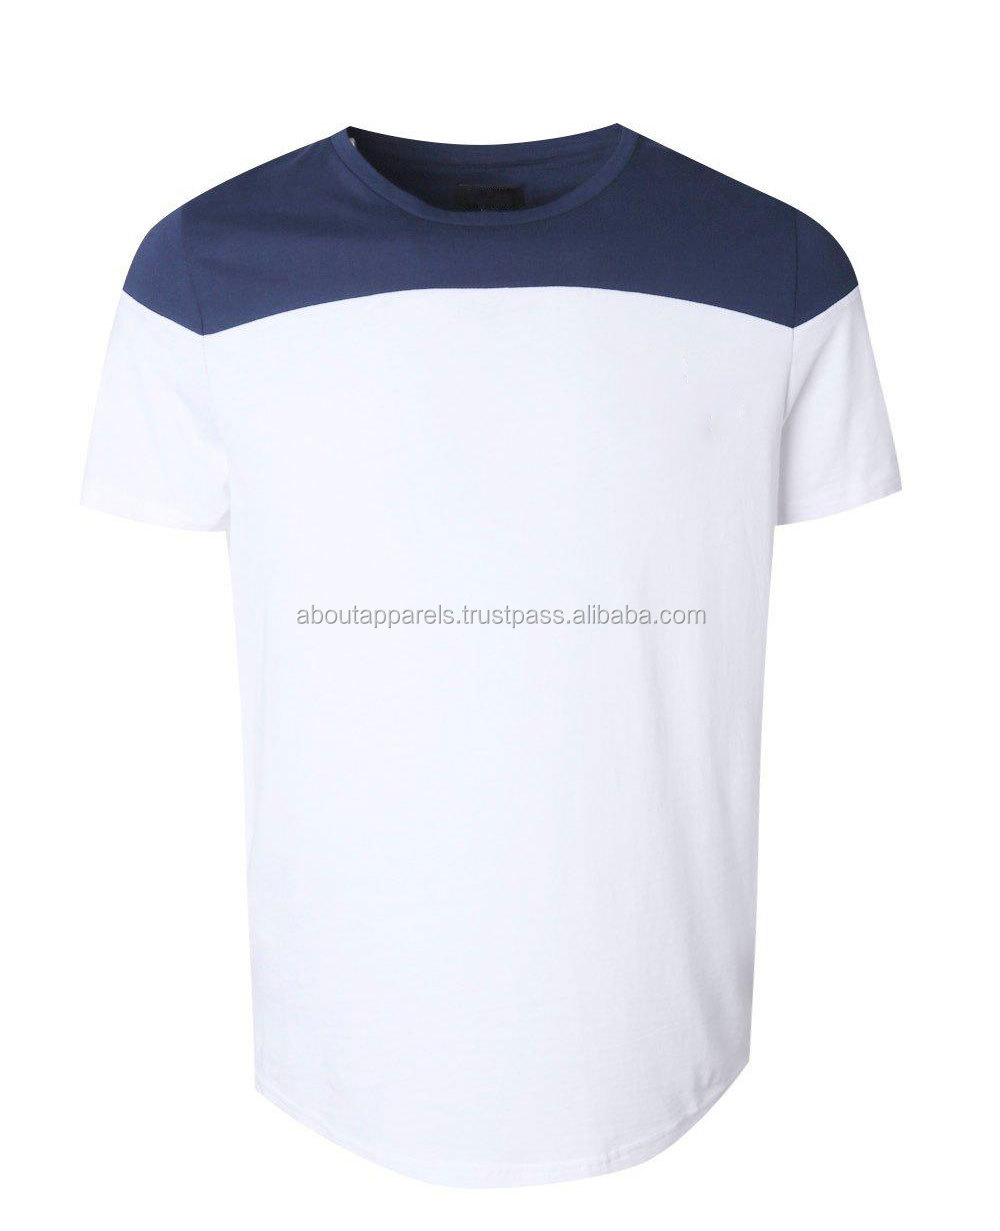 New Arrival Custom T Shirts Fast Delivery Design A Custom T Shirt